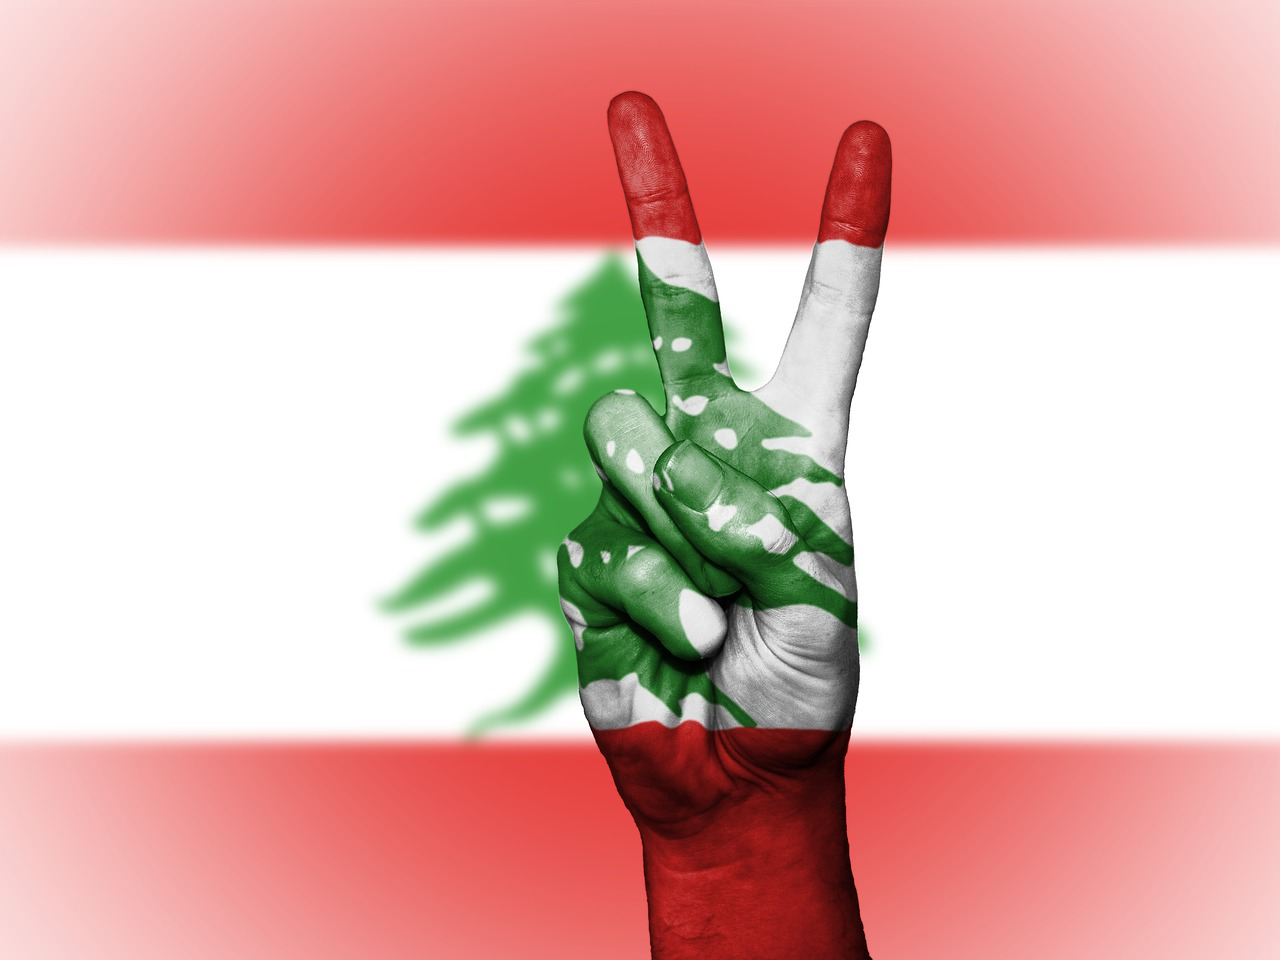 SUPPORT TO LEGAL AID IN LEBANON